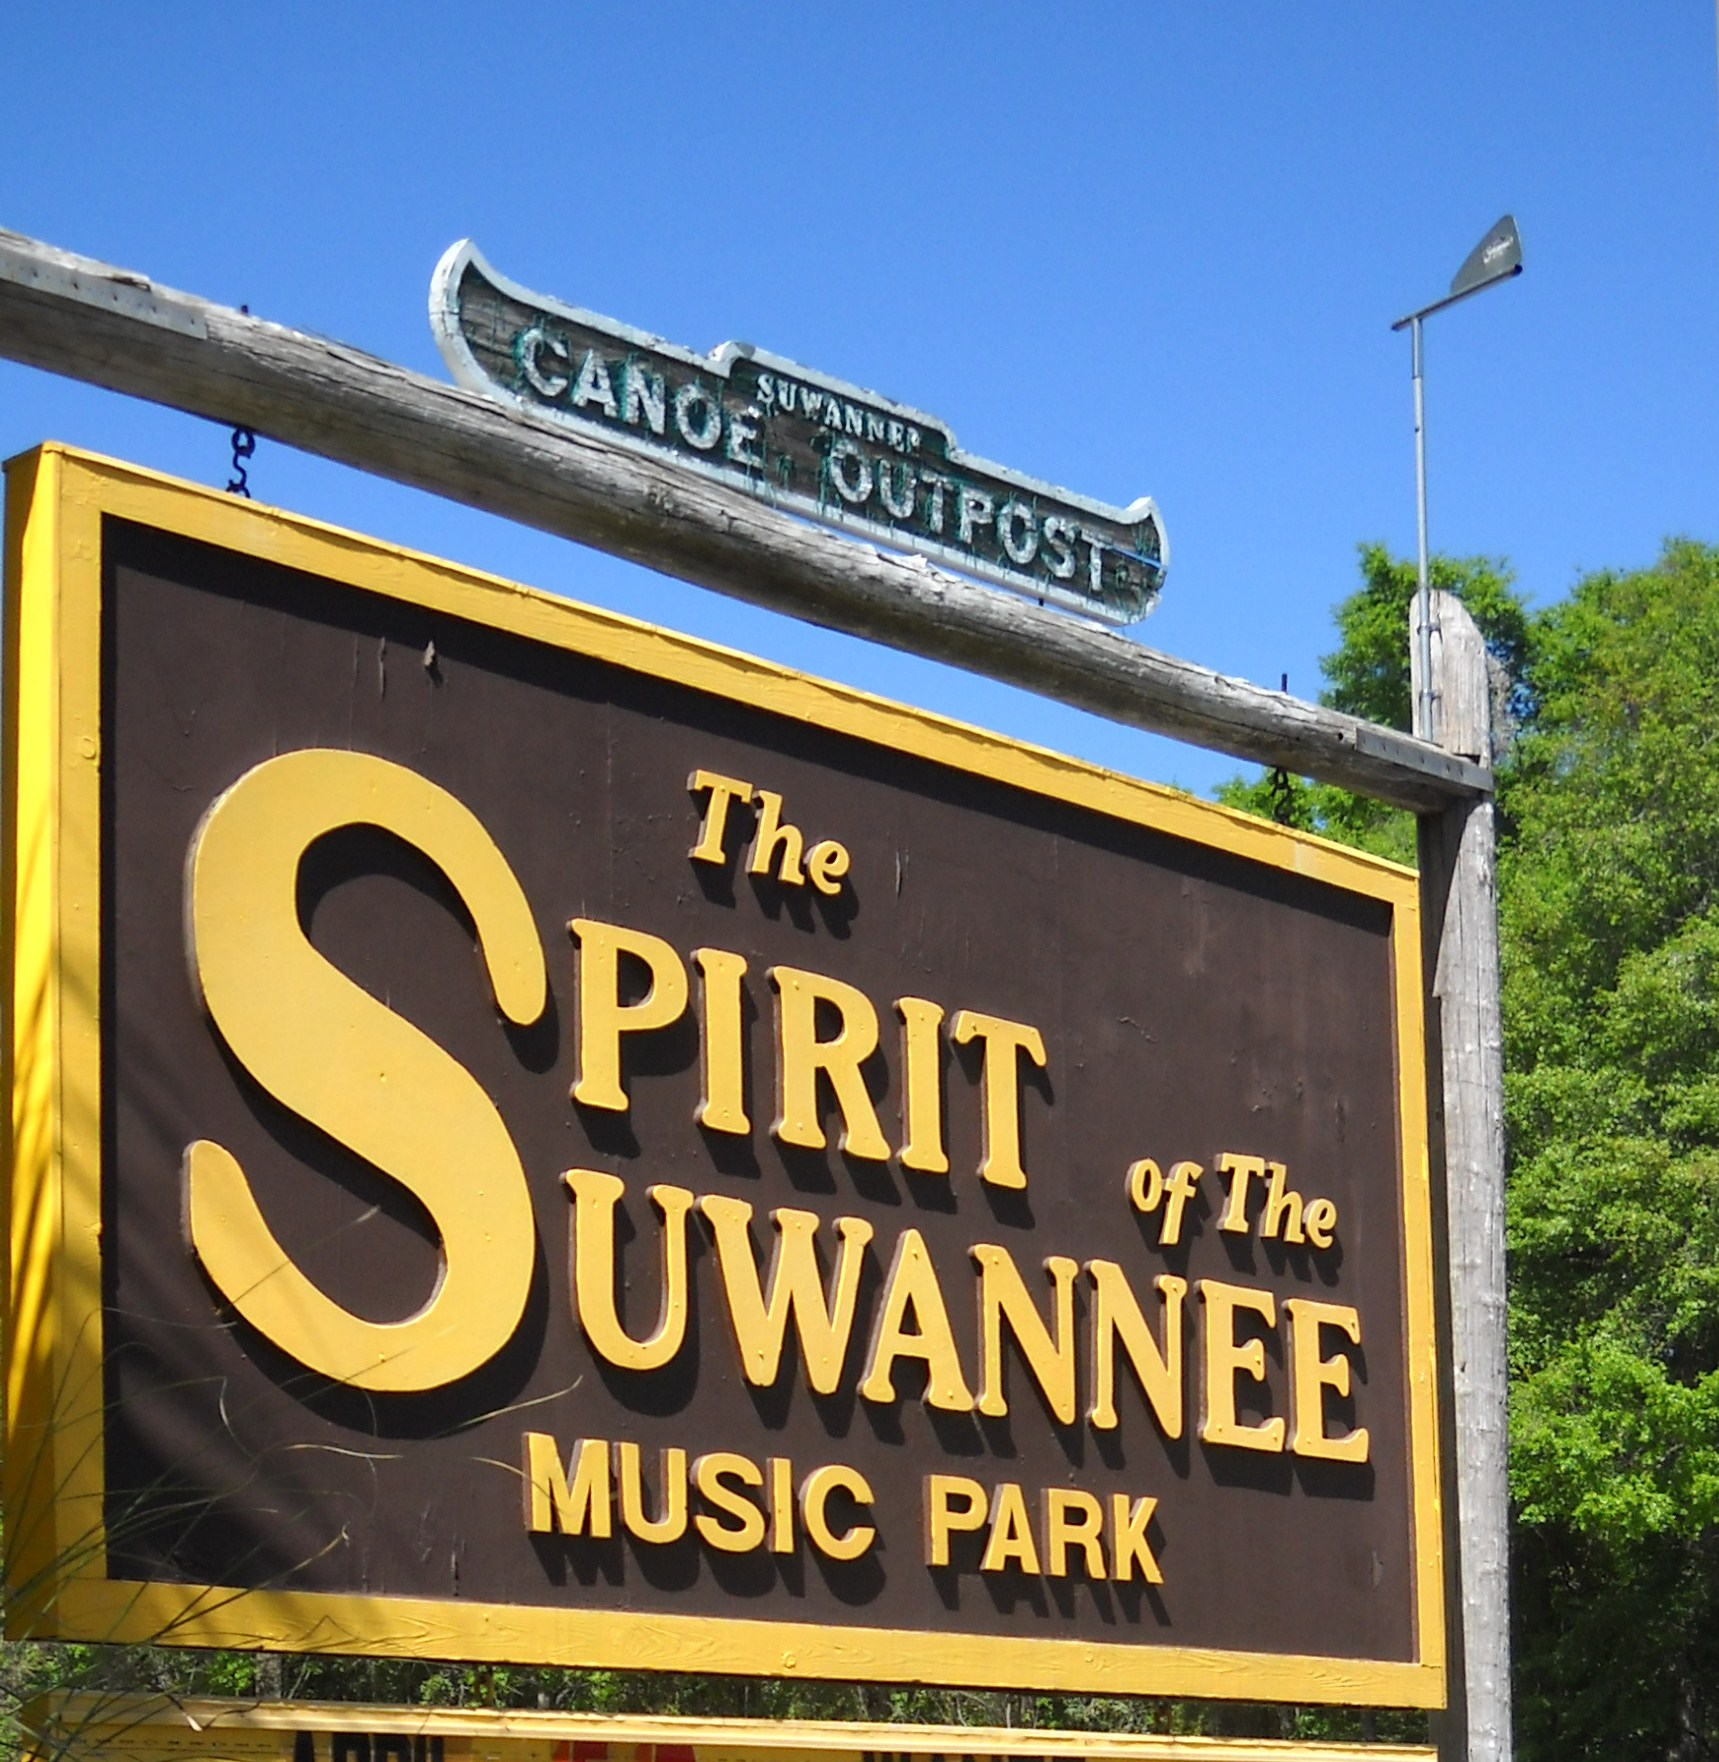 SPIRIT OF THE SUWANNEE MUSIC PARK, LIVE OAK, FLORIDA